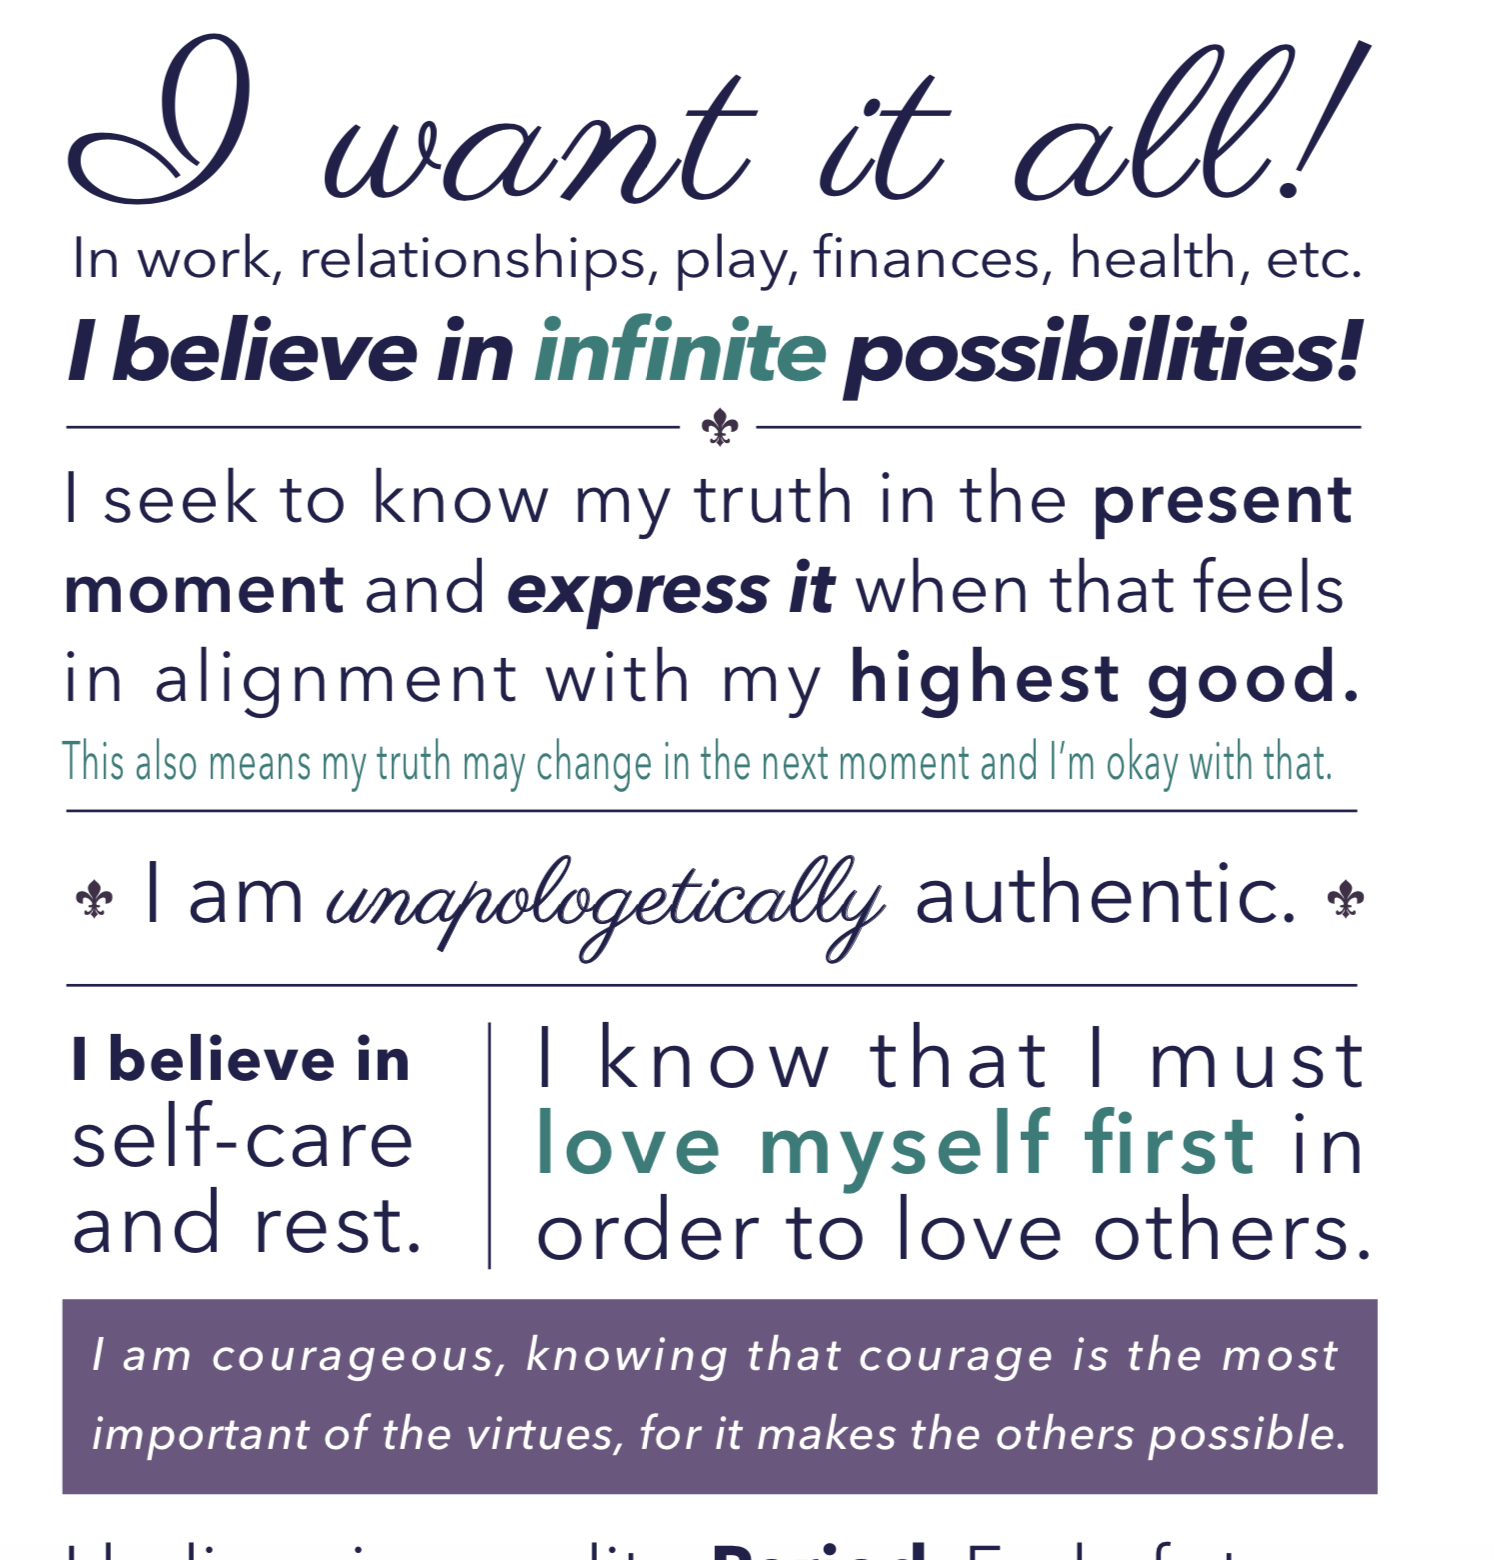 Get the entire manifesto in a printable pdf by clicking on this image.